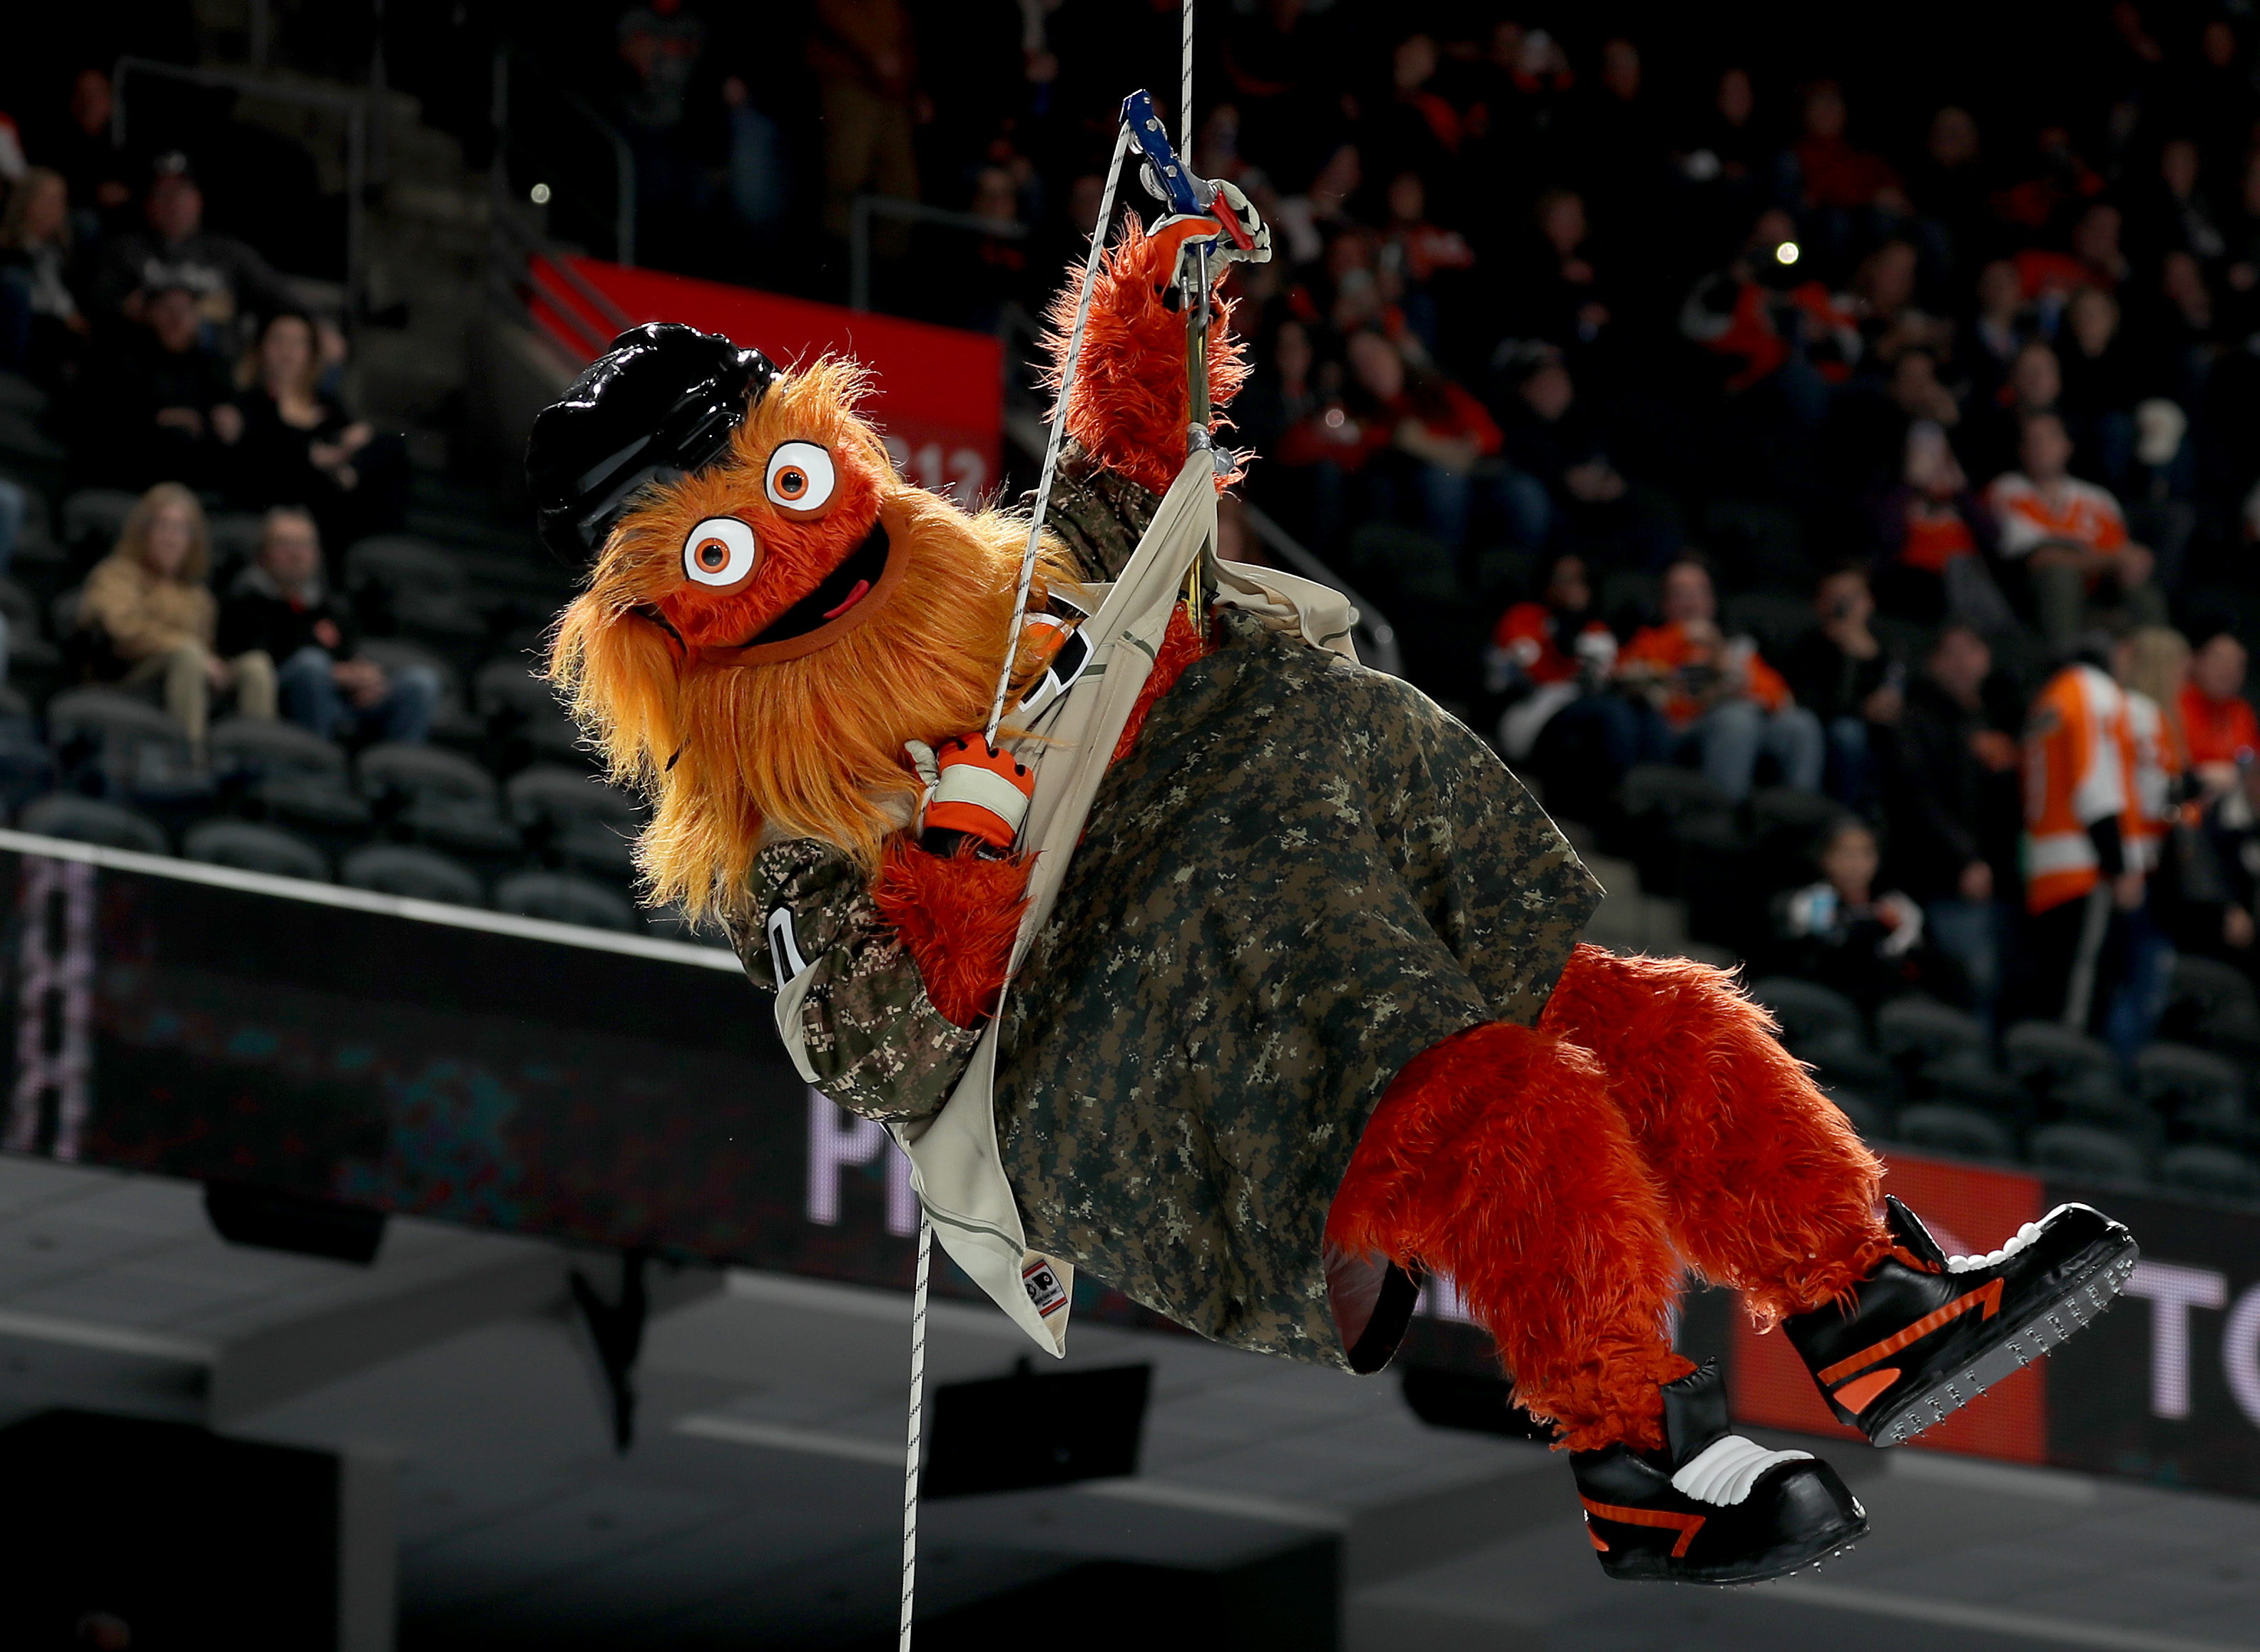 The Philadelphia Flyers mascot Gritty makes an entrance before the game between the Philadelphia Flyers and the Chicago Blackhawks at Wells Fargo Center on November 10, 2018 in Philadelphia, Pennsylvania. (Photo by Elsa/Getty Images)